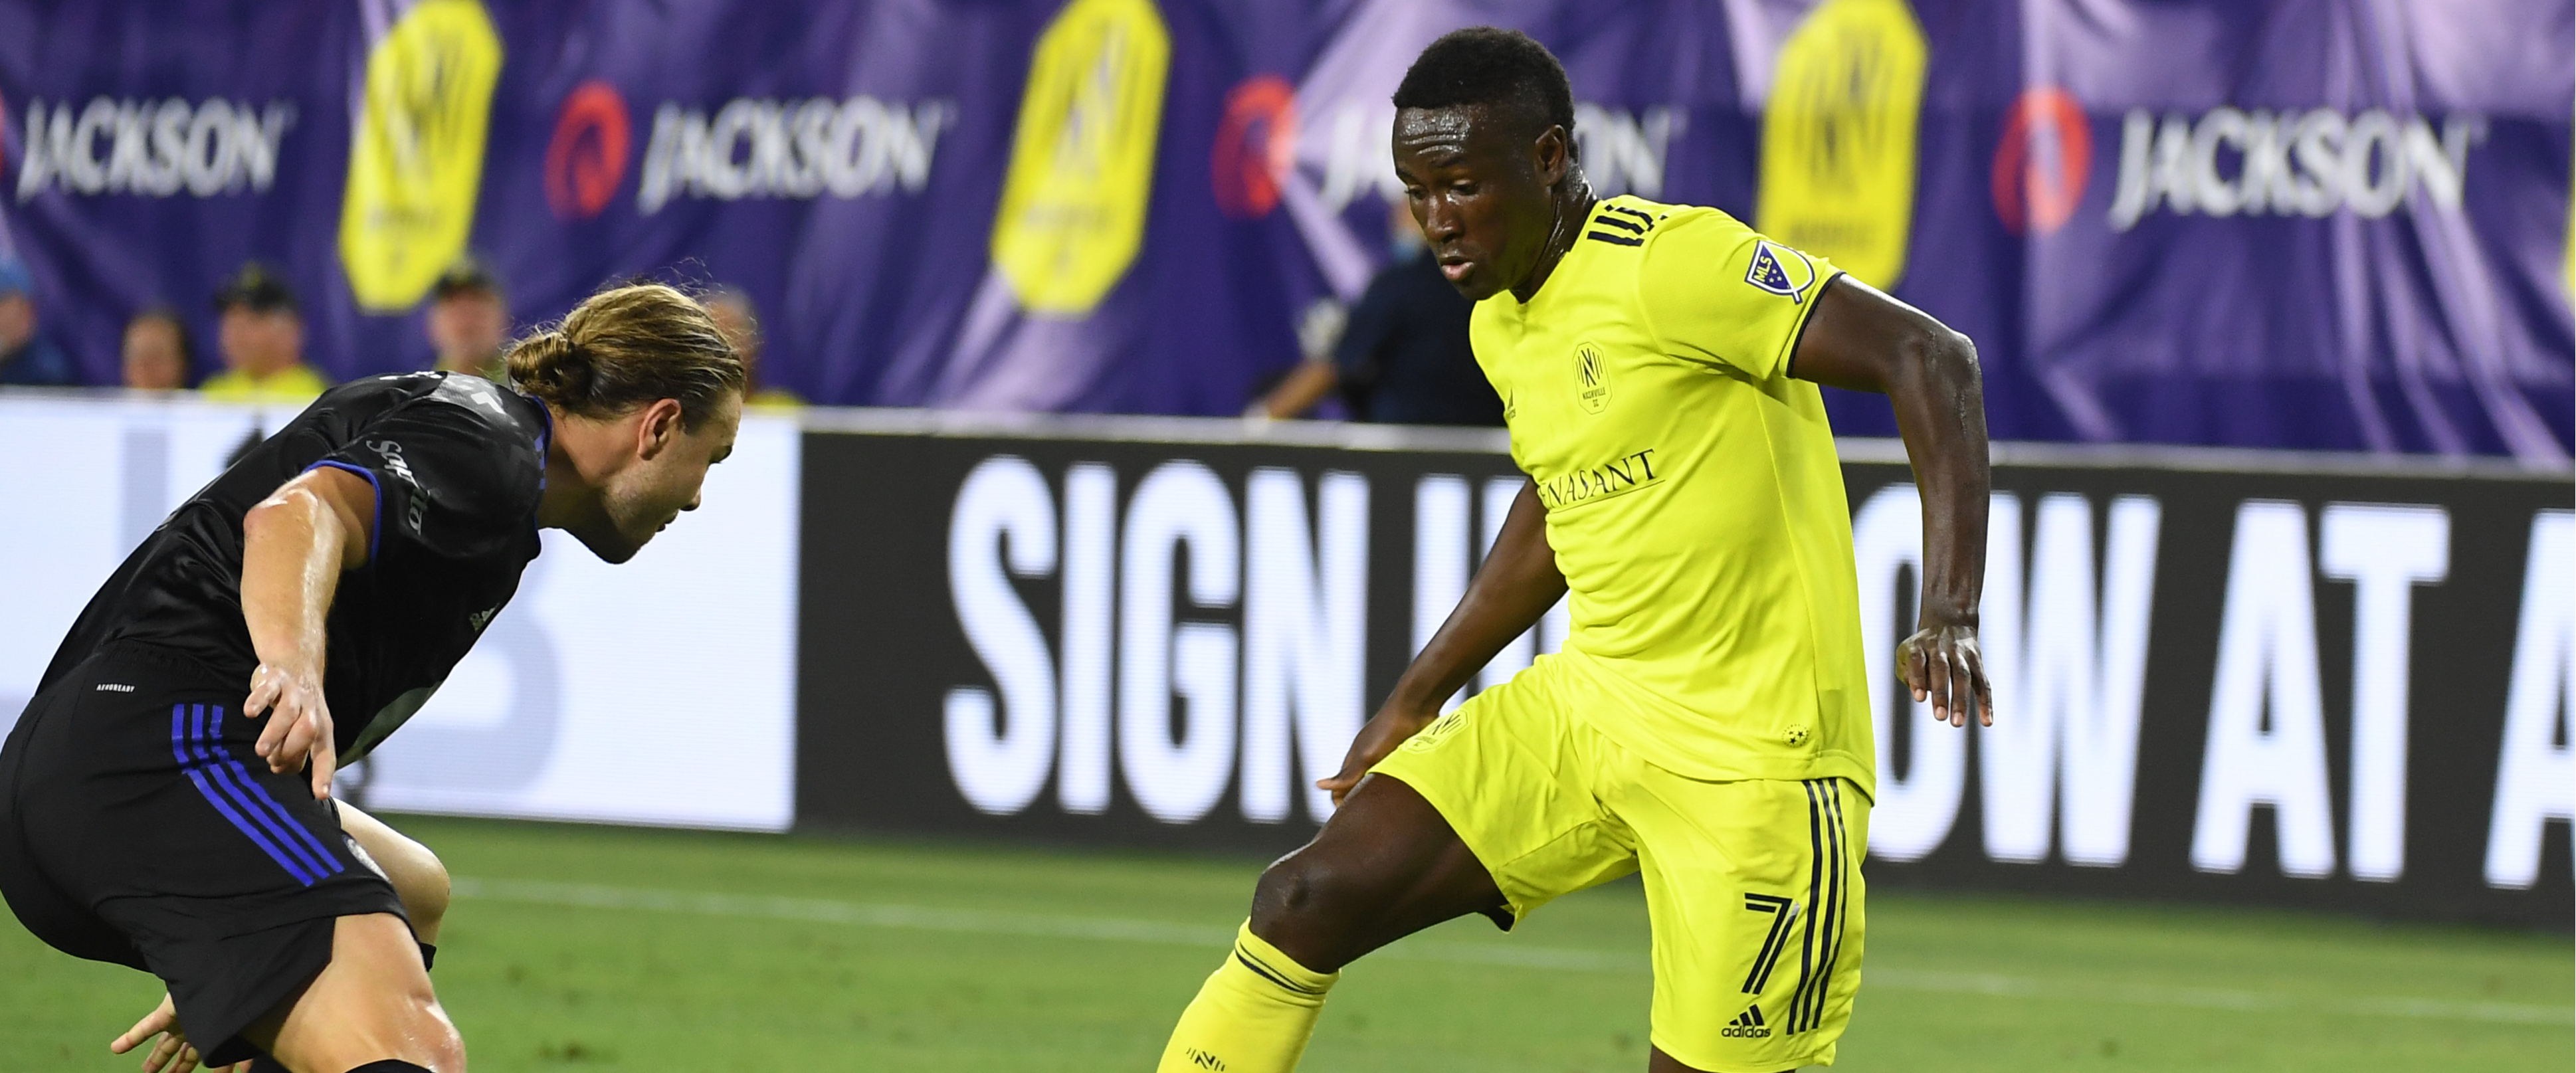 Nashville SC: I didn't realize how much I missed Abu Danladi until now